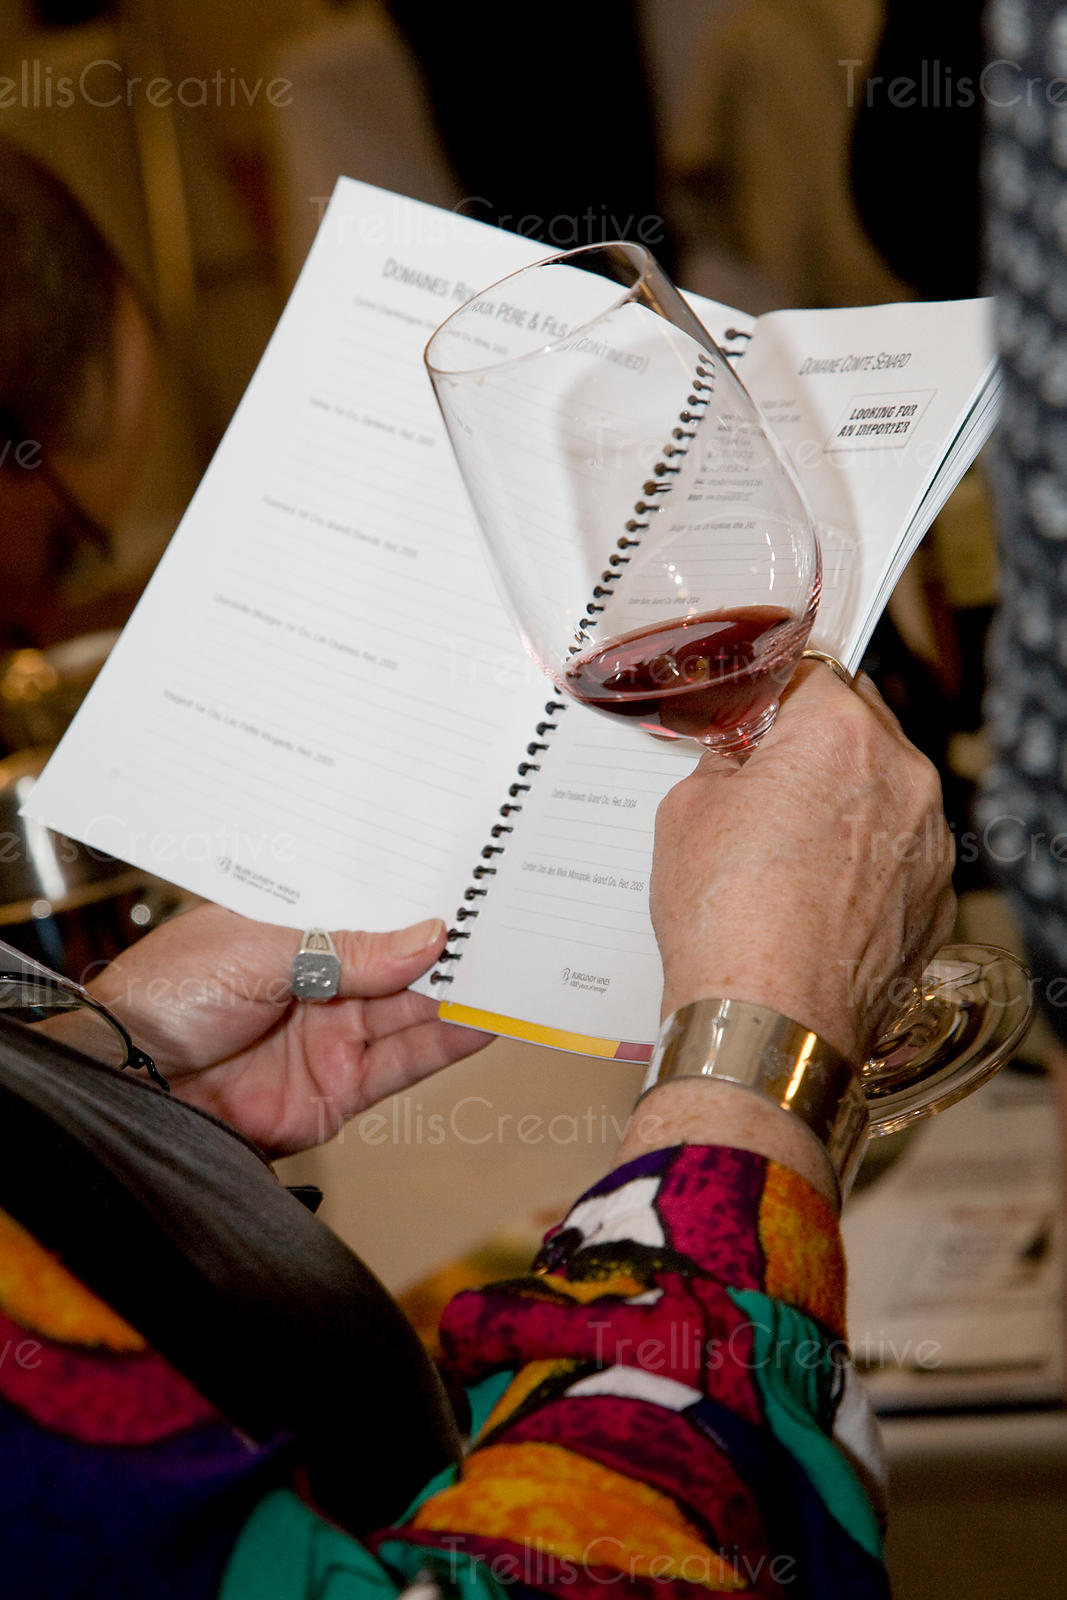 Older woman's hand holding glass of red wine and book